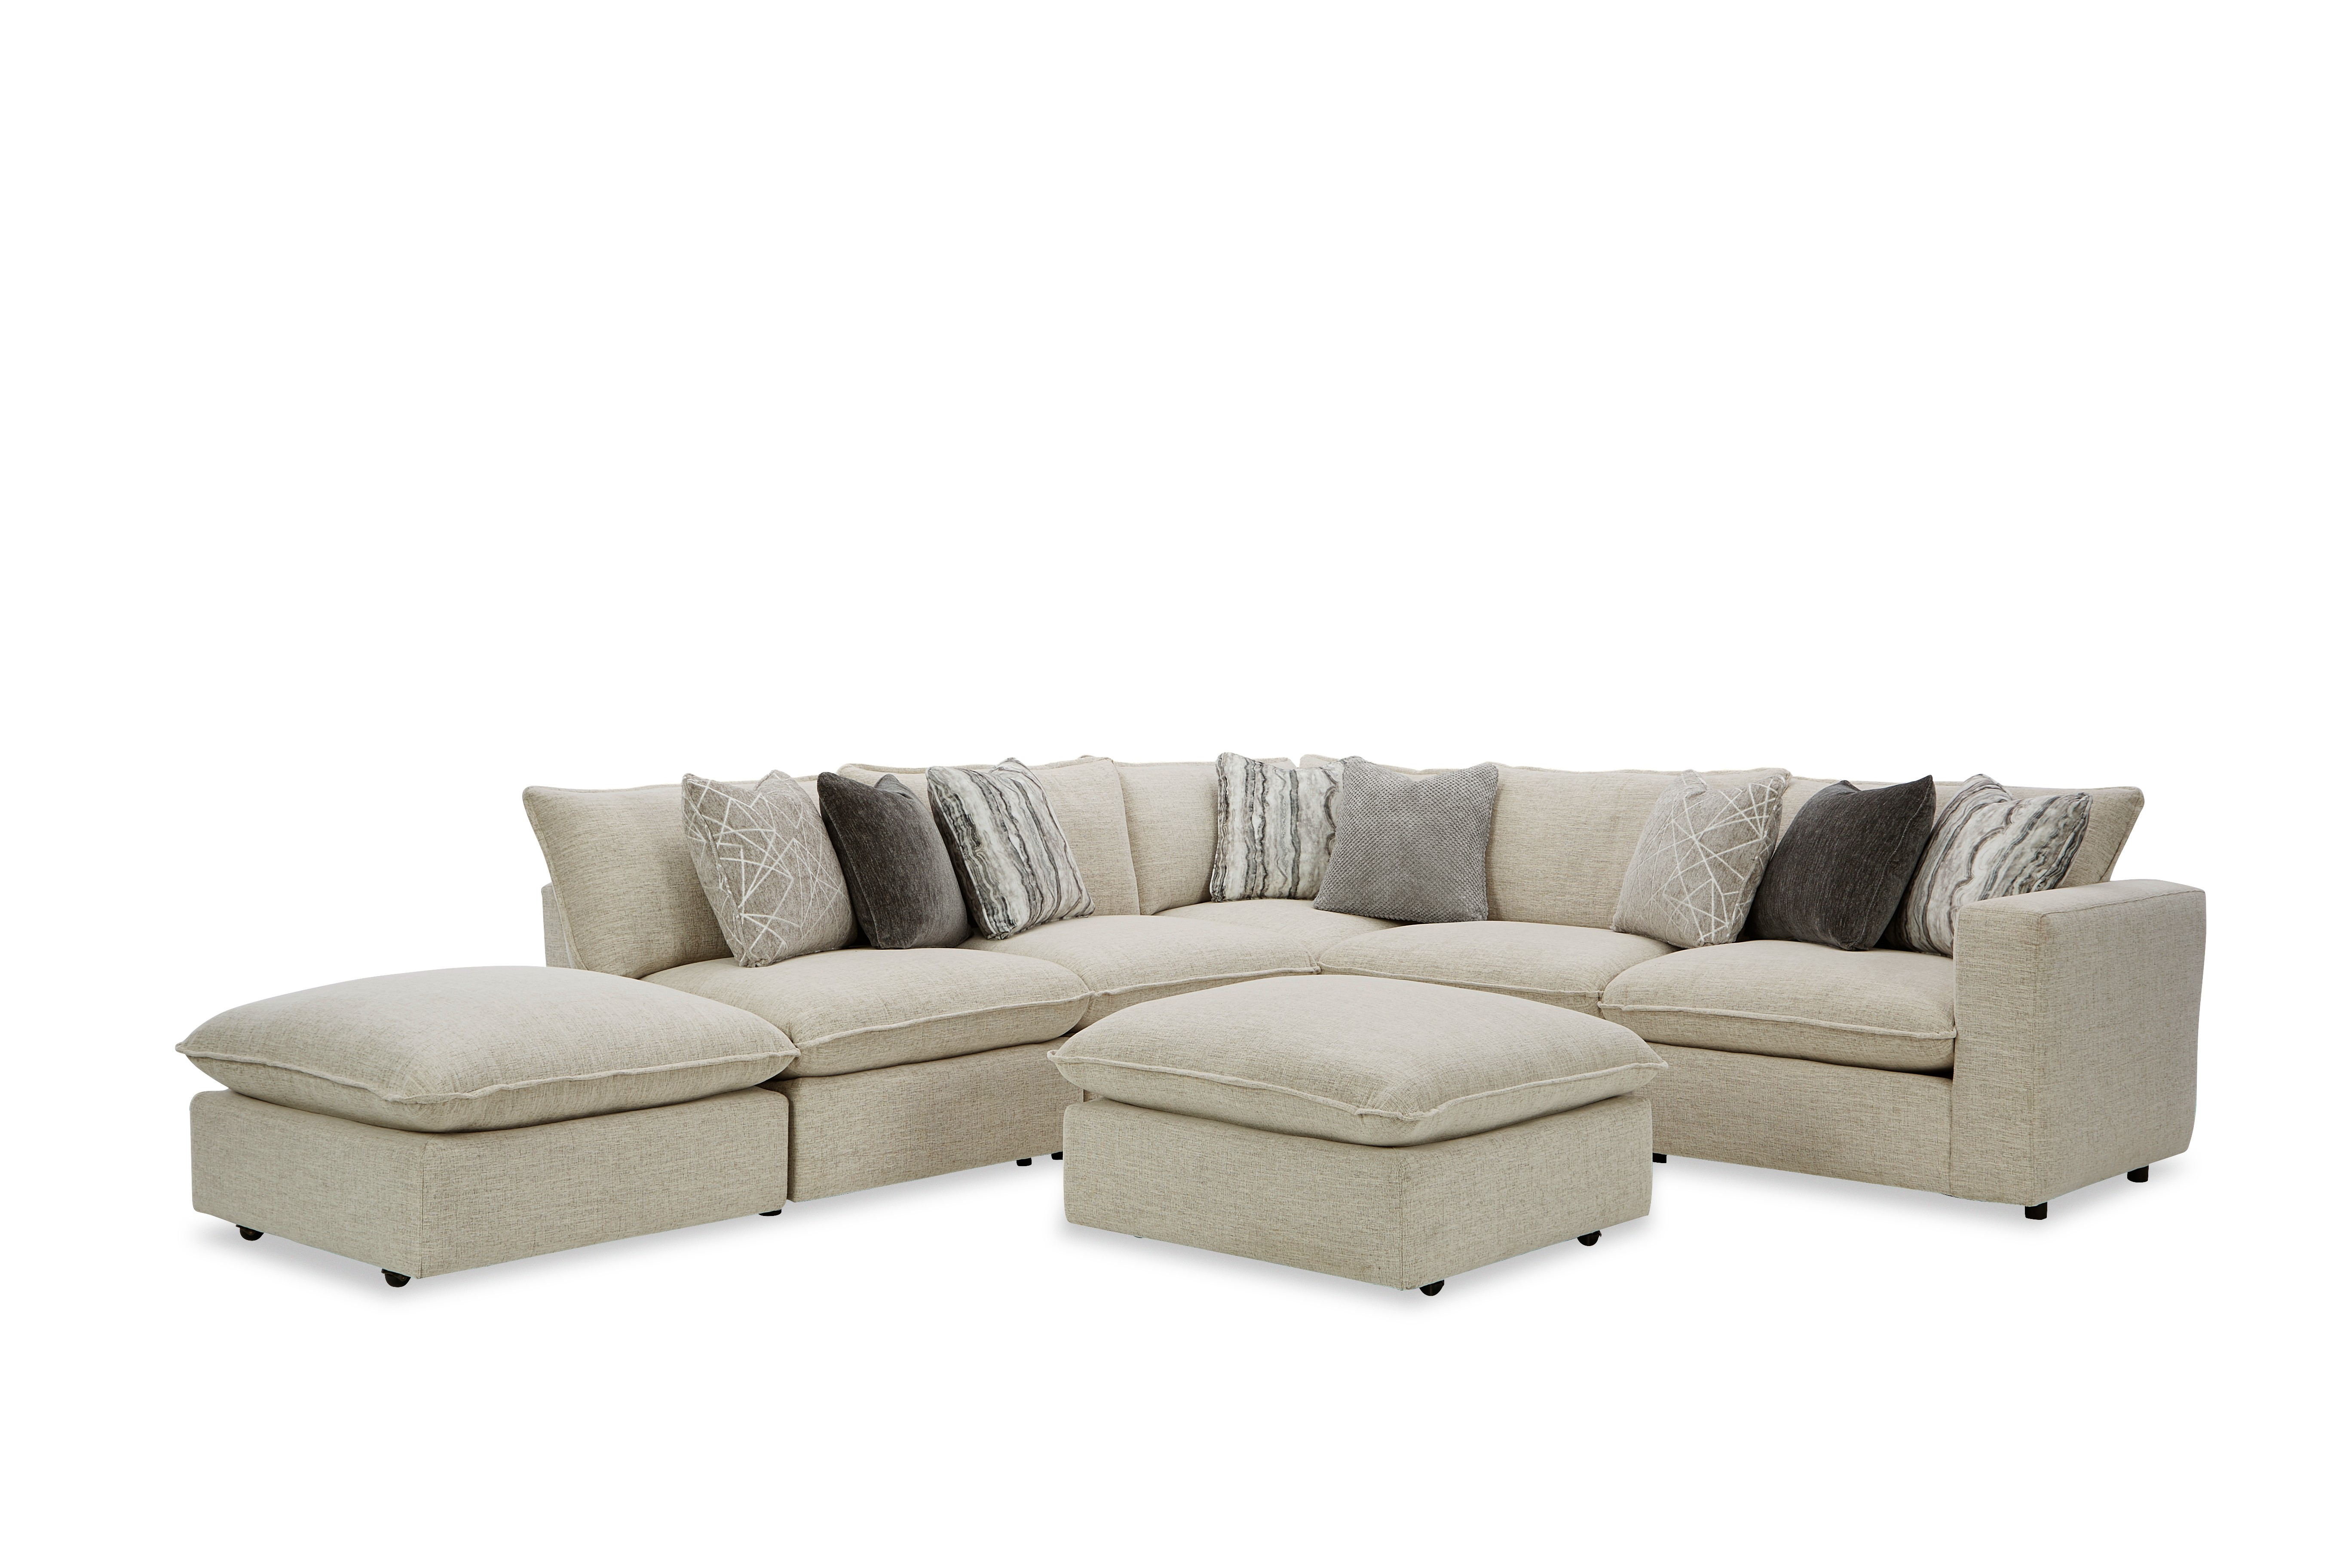 712741BD Sectional w/ Two Bumper Ottomans & RAF Chair by Craftmaster at Prime Brothers Furniture